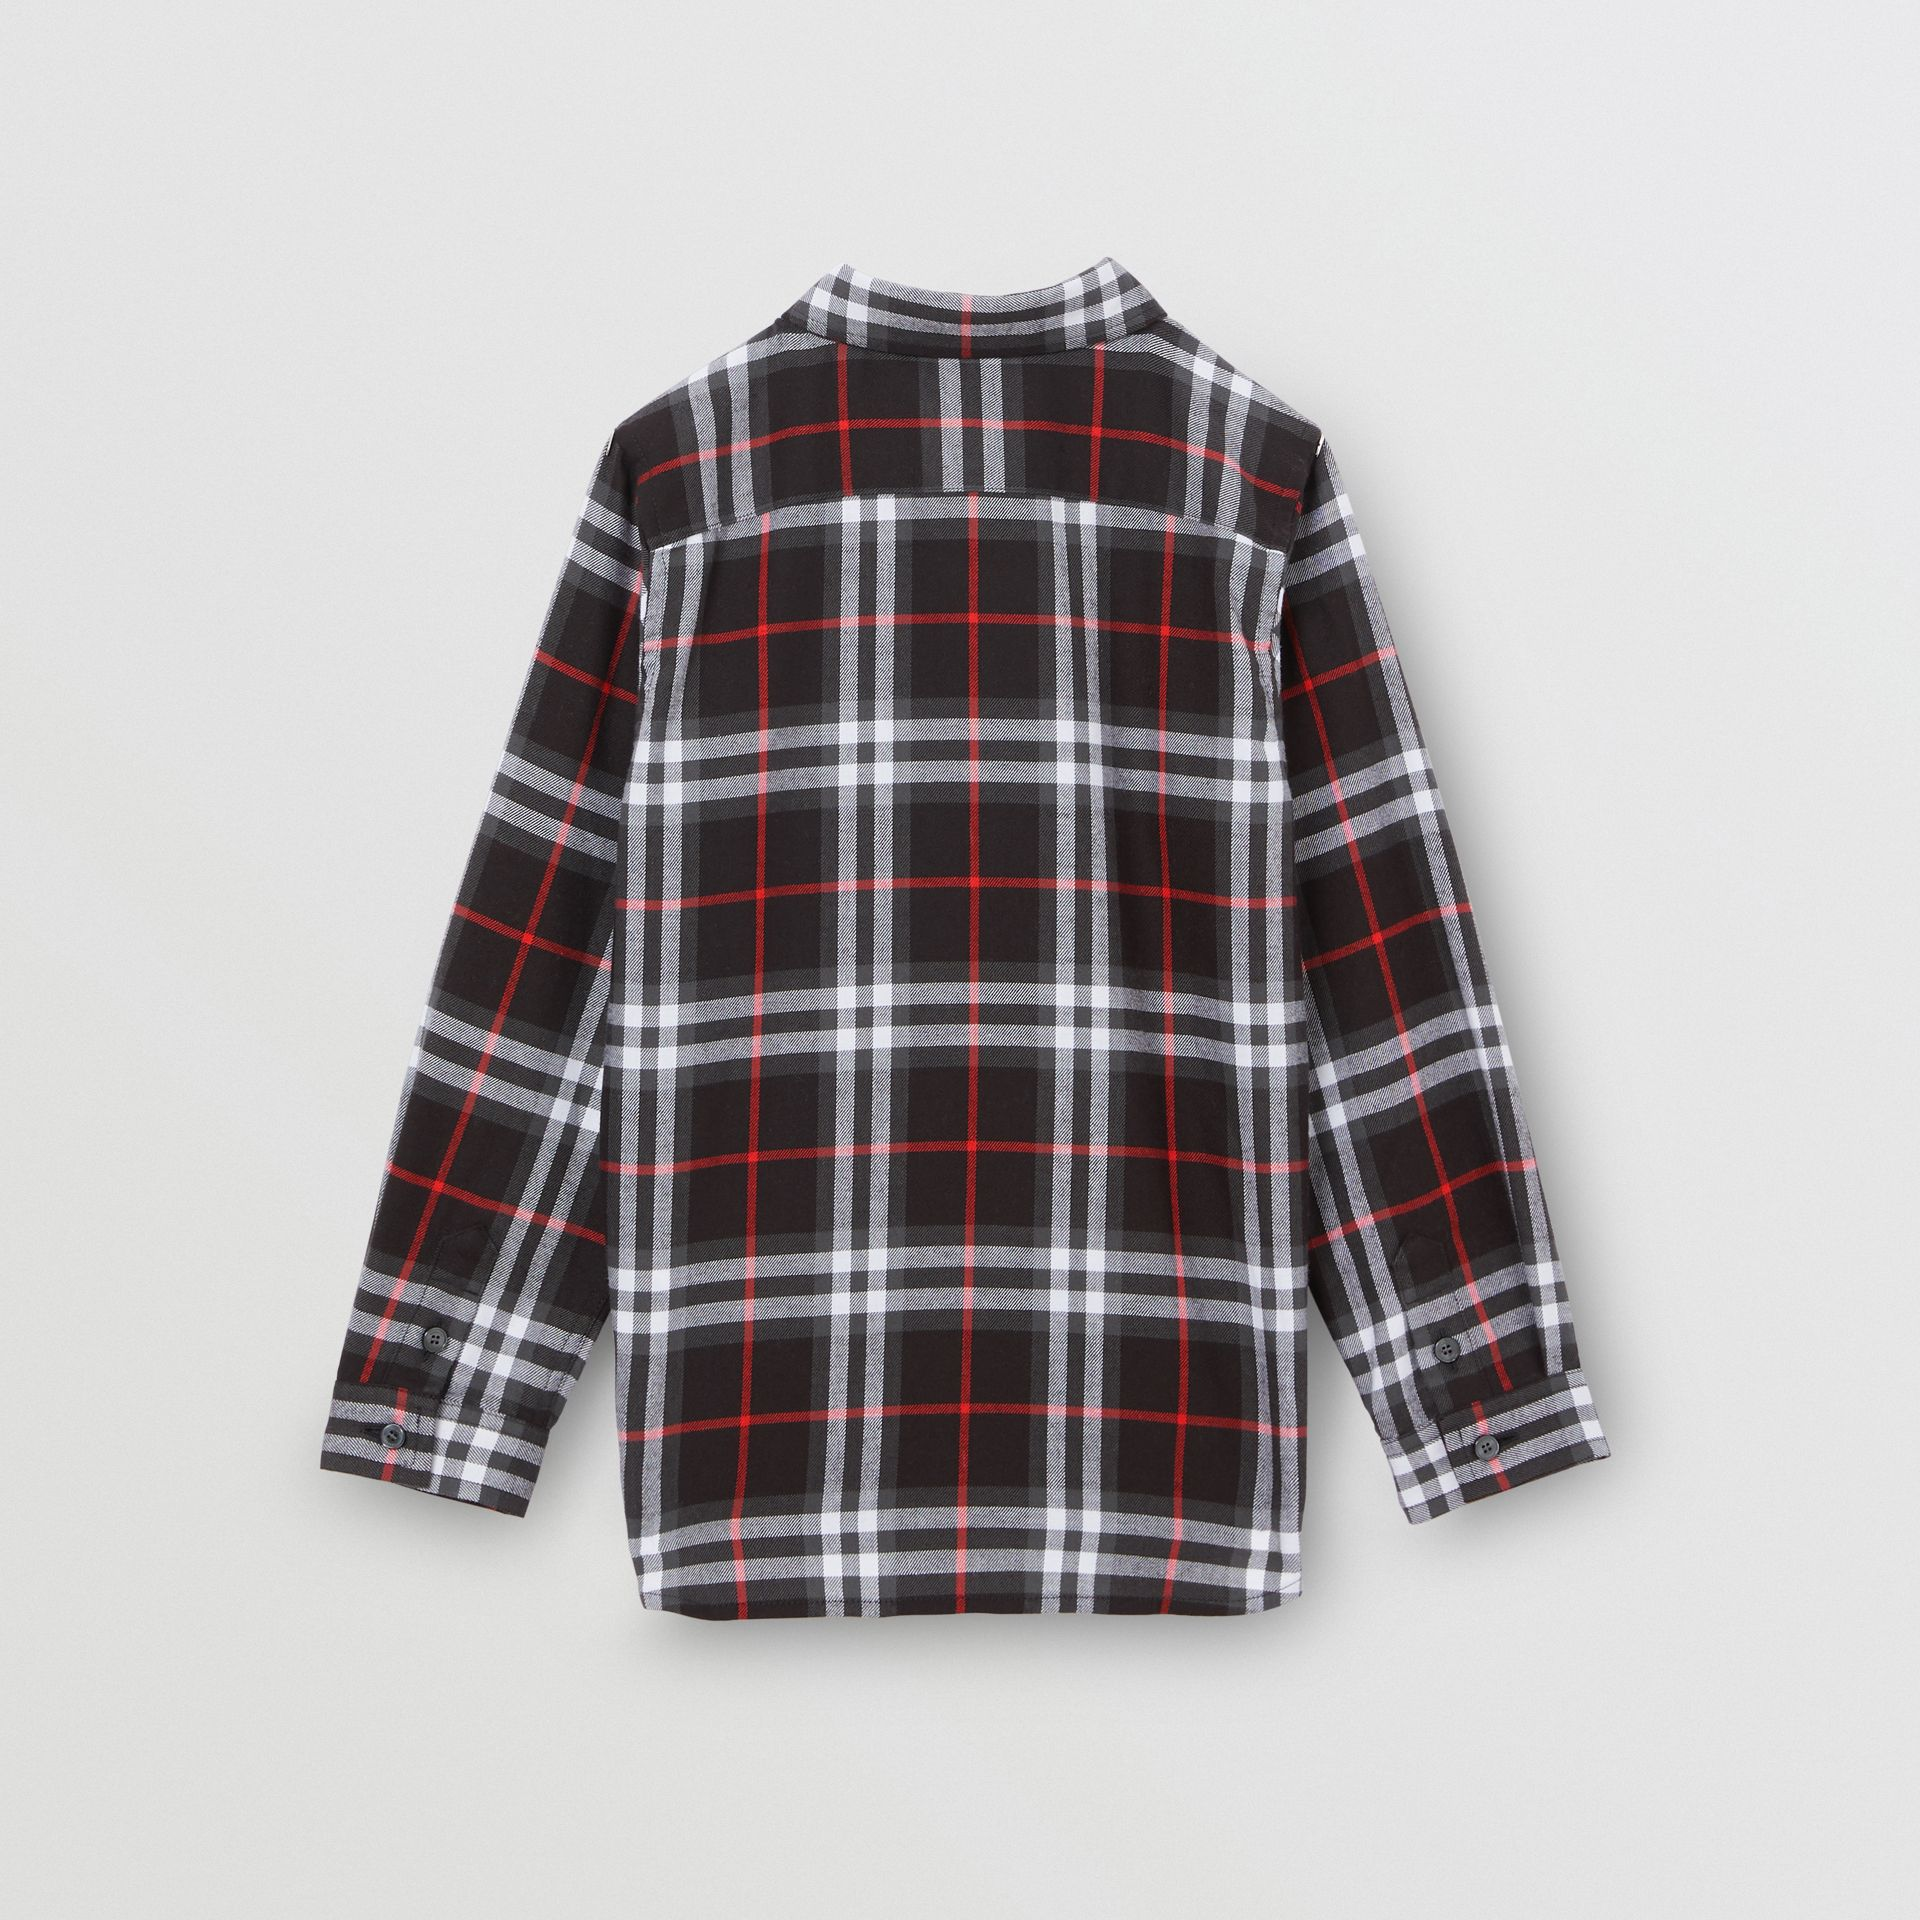 Vintage Check Cotton Flannel Shirt in Black | Burberry United States - gallery image 3